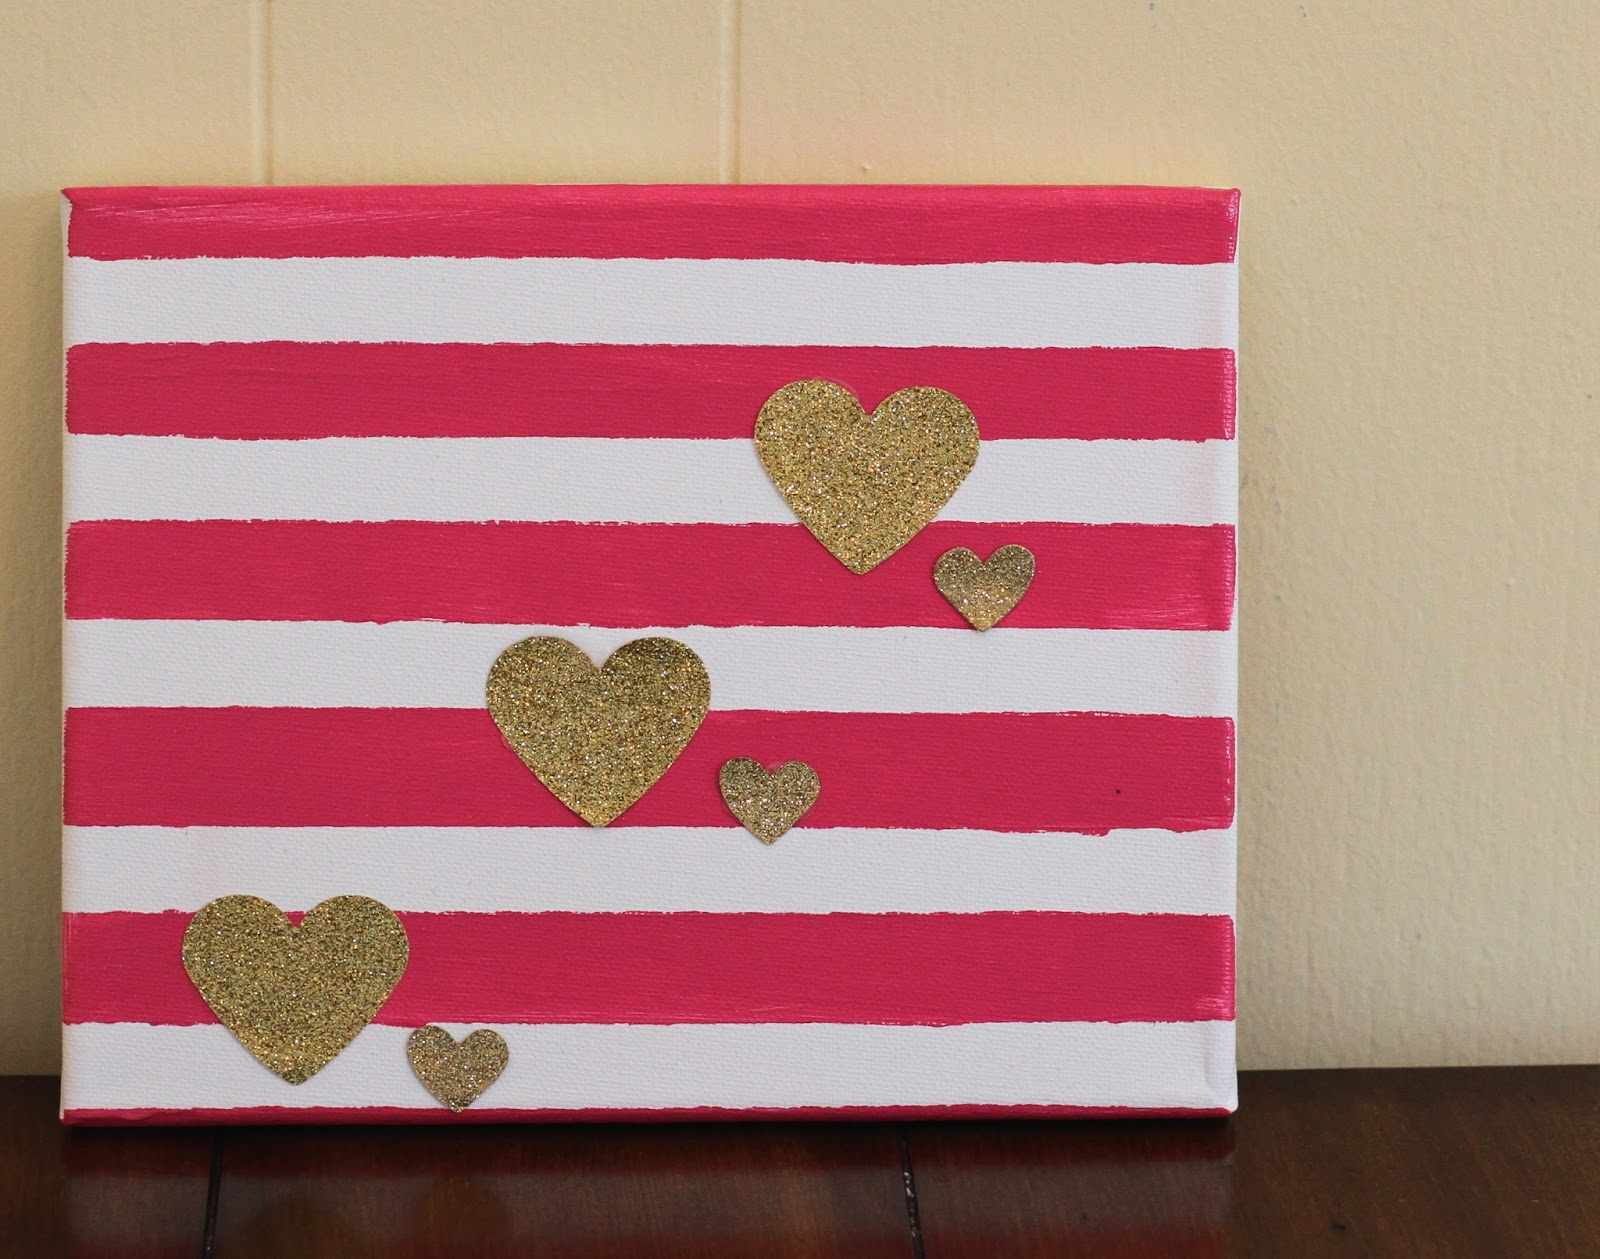 Easy DIY Valentineu0027s Day Decor: 2 Ideas For A Valentine Canvas   The  Chirping Moms